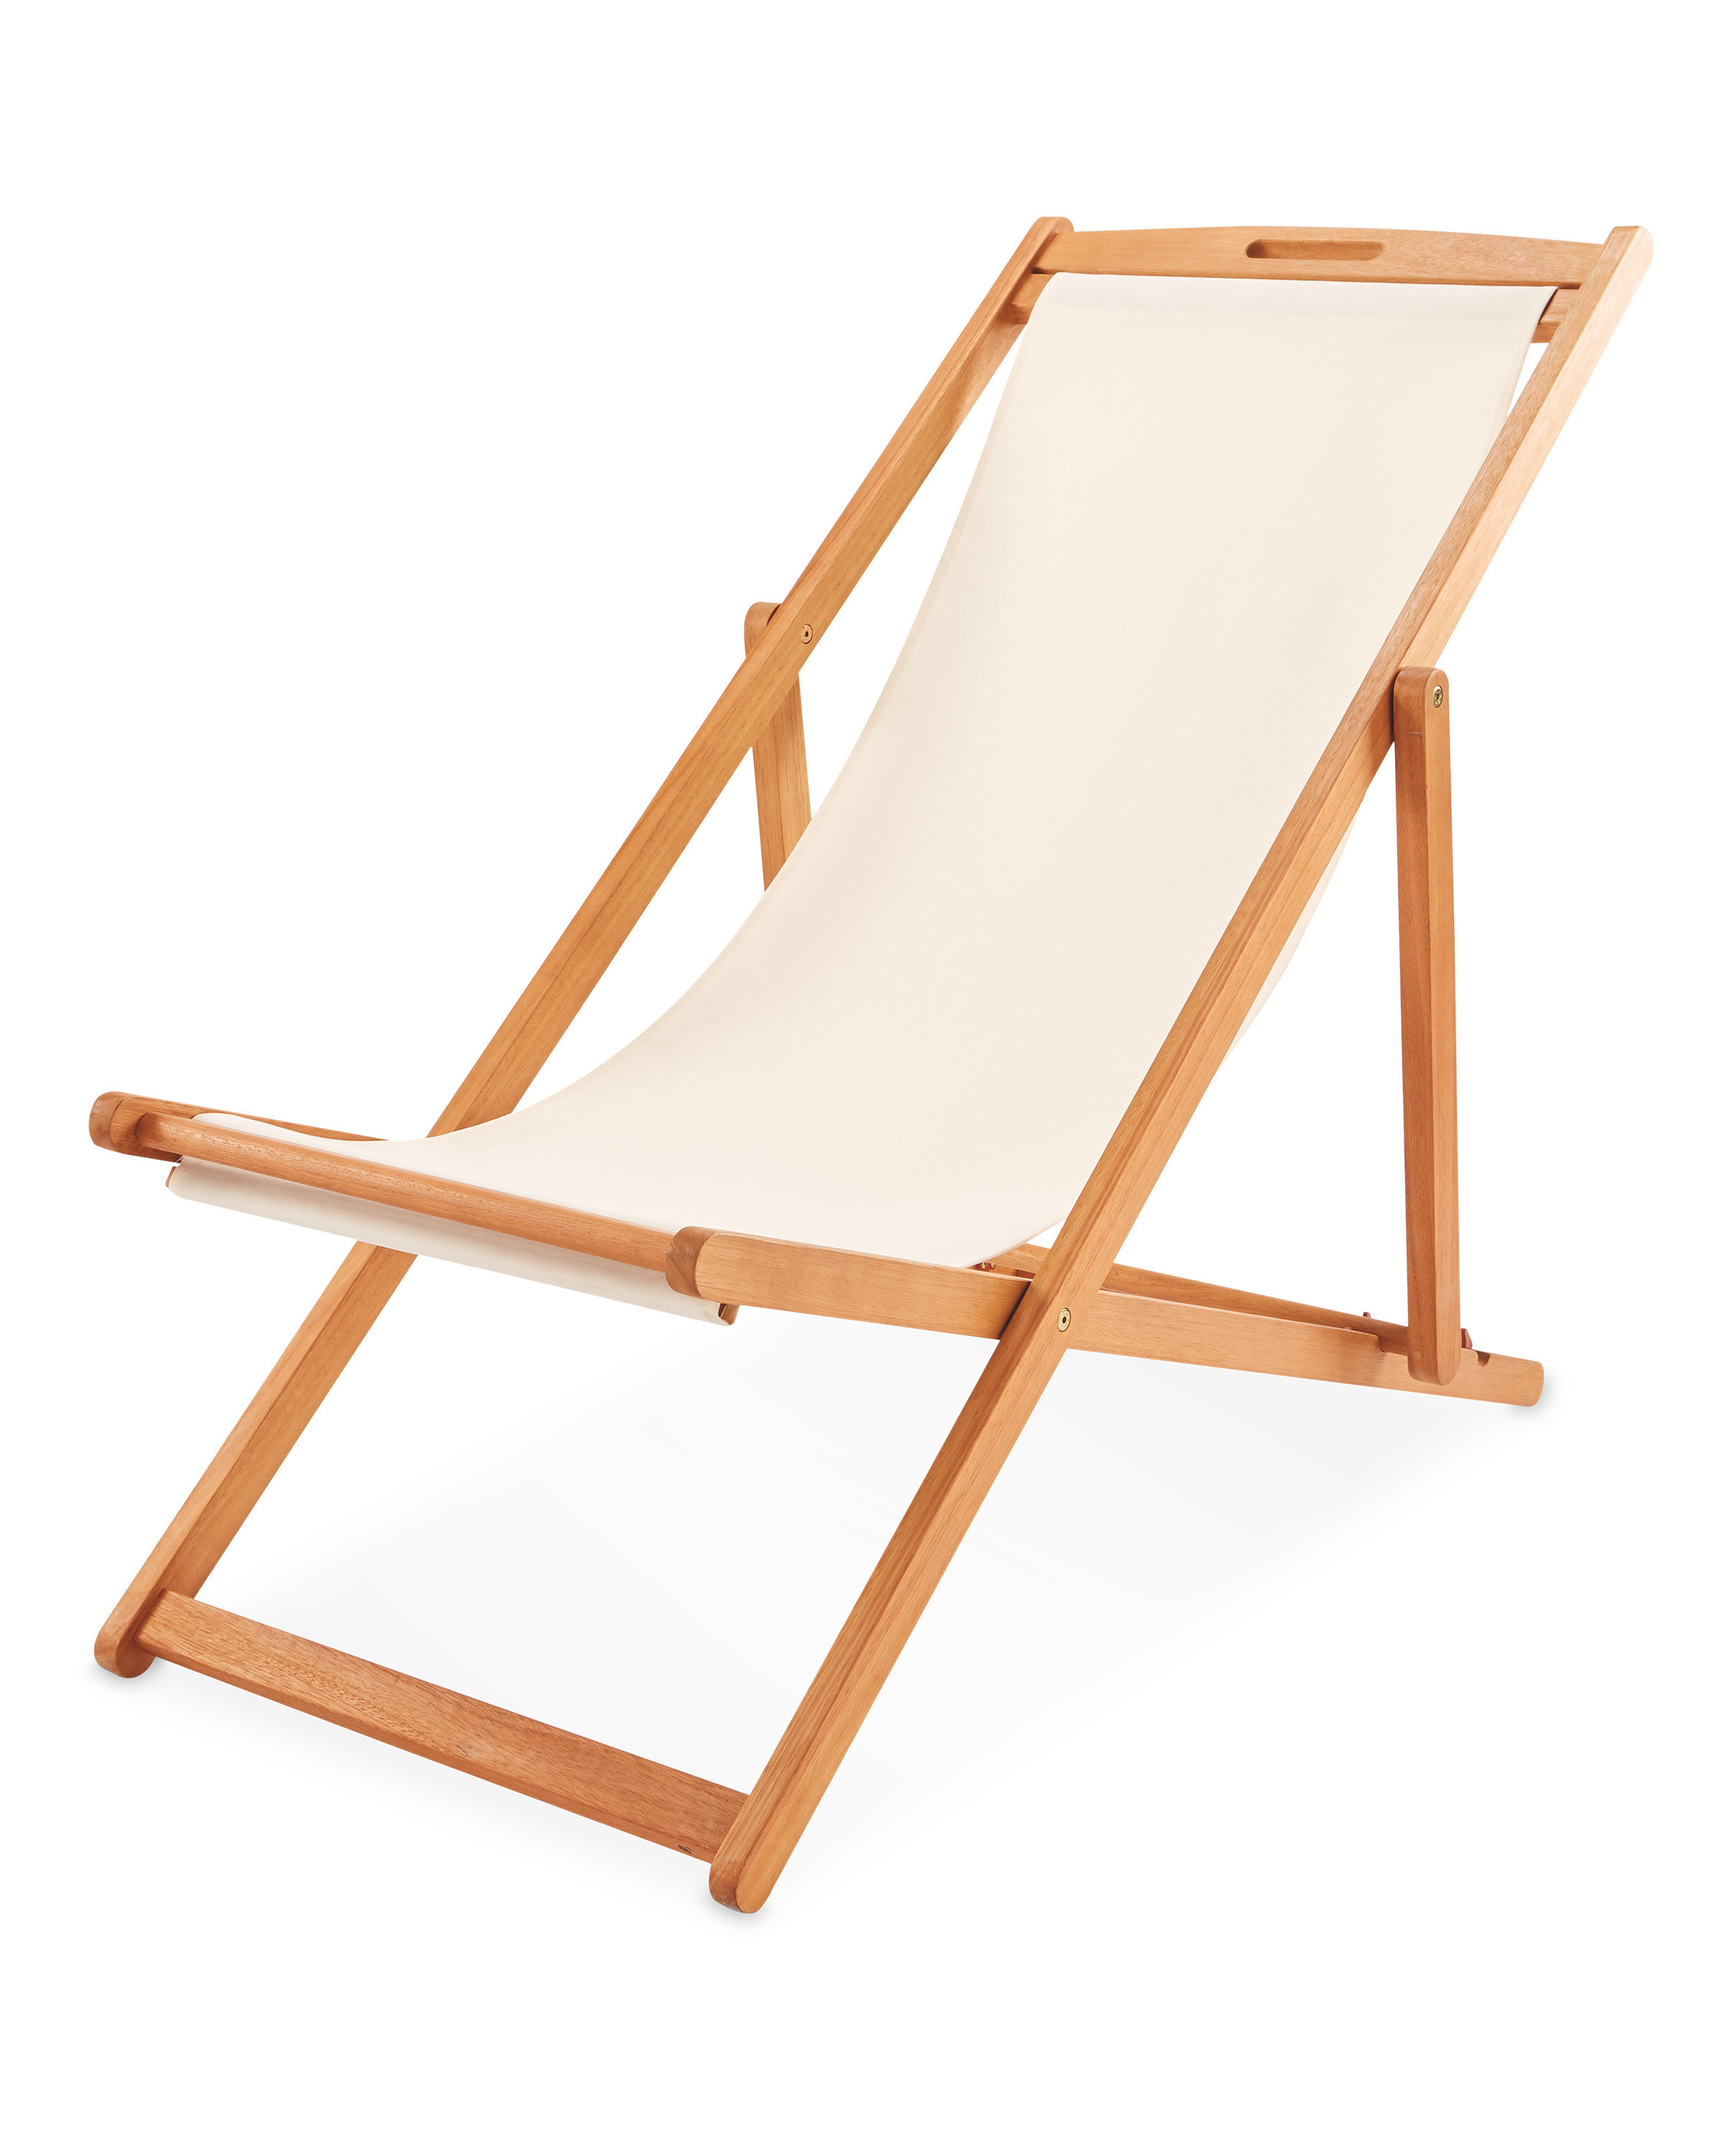 Cream Wooden Deck Chair